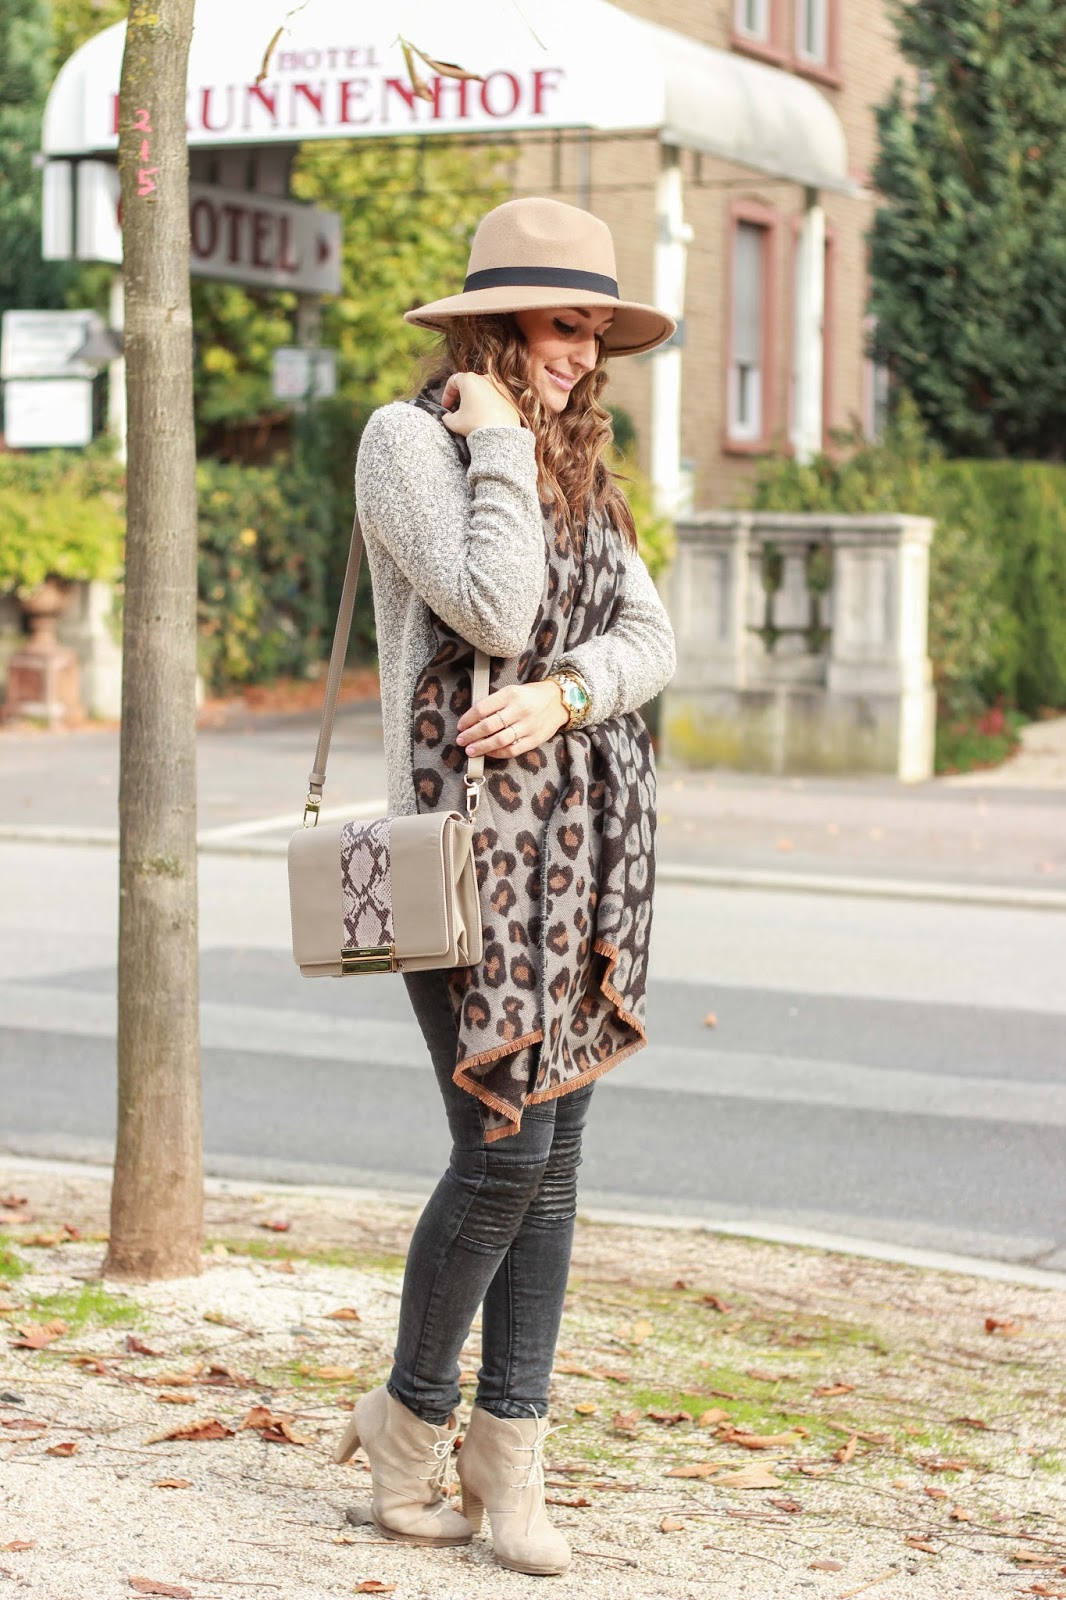 fedora hut - leopardenschal - outfitinspiration - see by chloe tasche - fashionblogger - outfitinspiration - streetstyle - streetstyleblogger